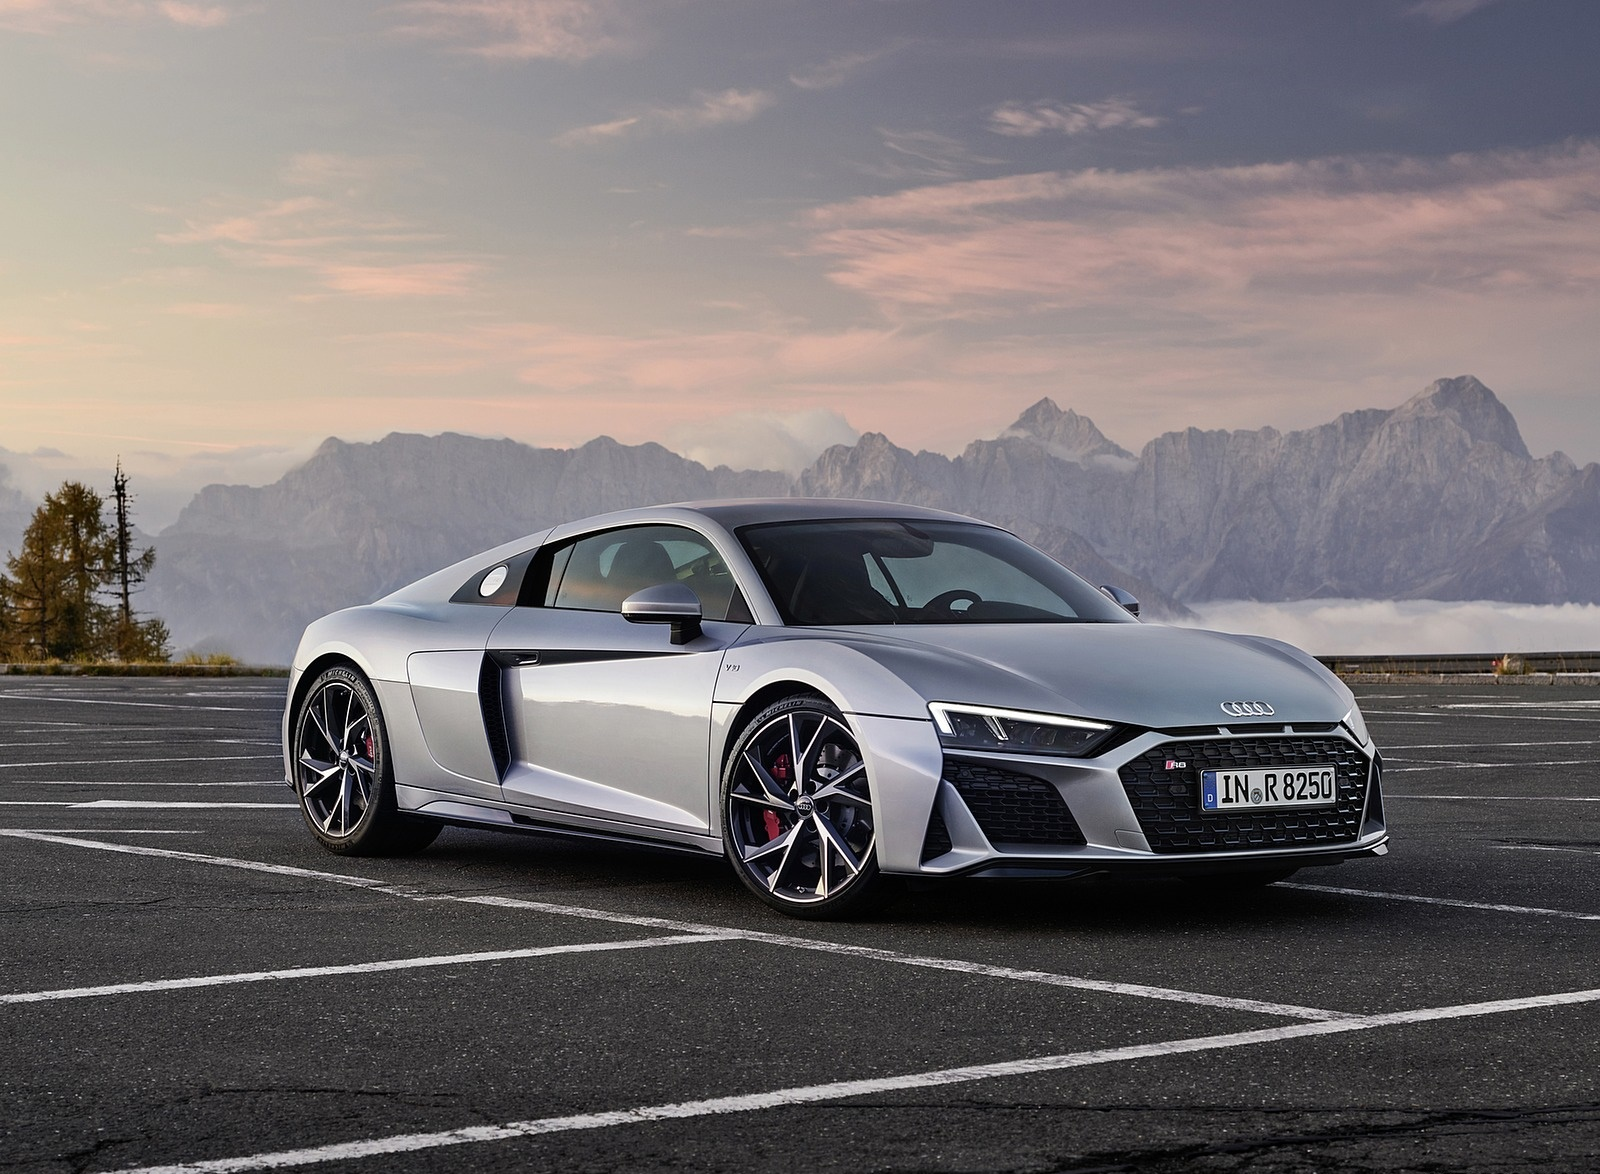 2020 Audi R8 V10 RWD Coupe (Color: Florett Silver) Front Three-Quarter Wallpapers #20 of 32